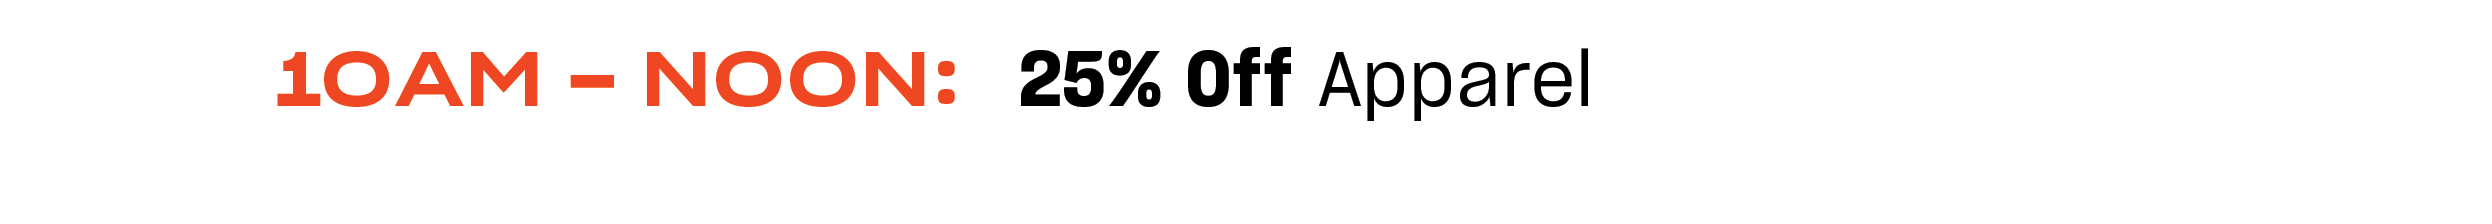 10am-noon: 25% off Apparel